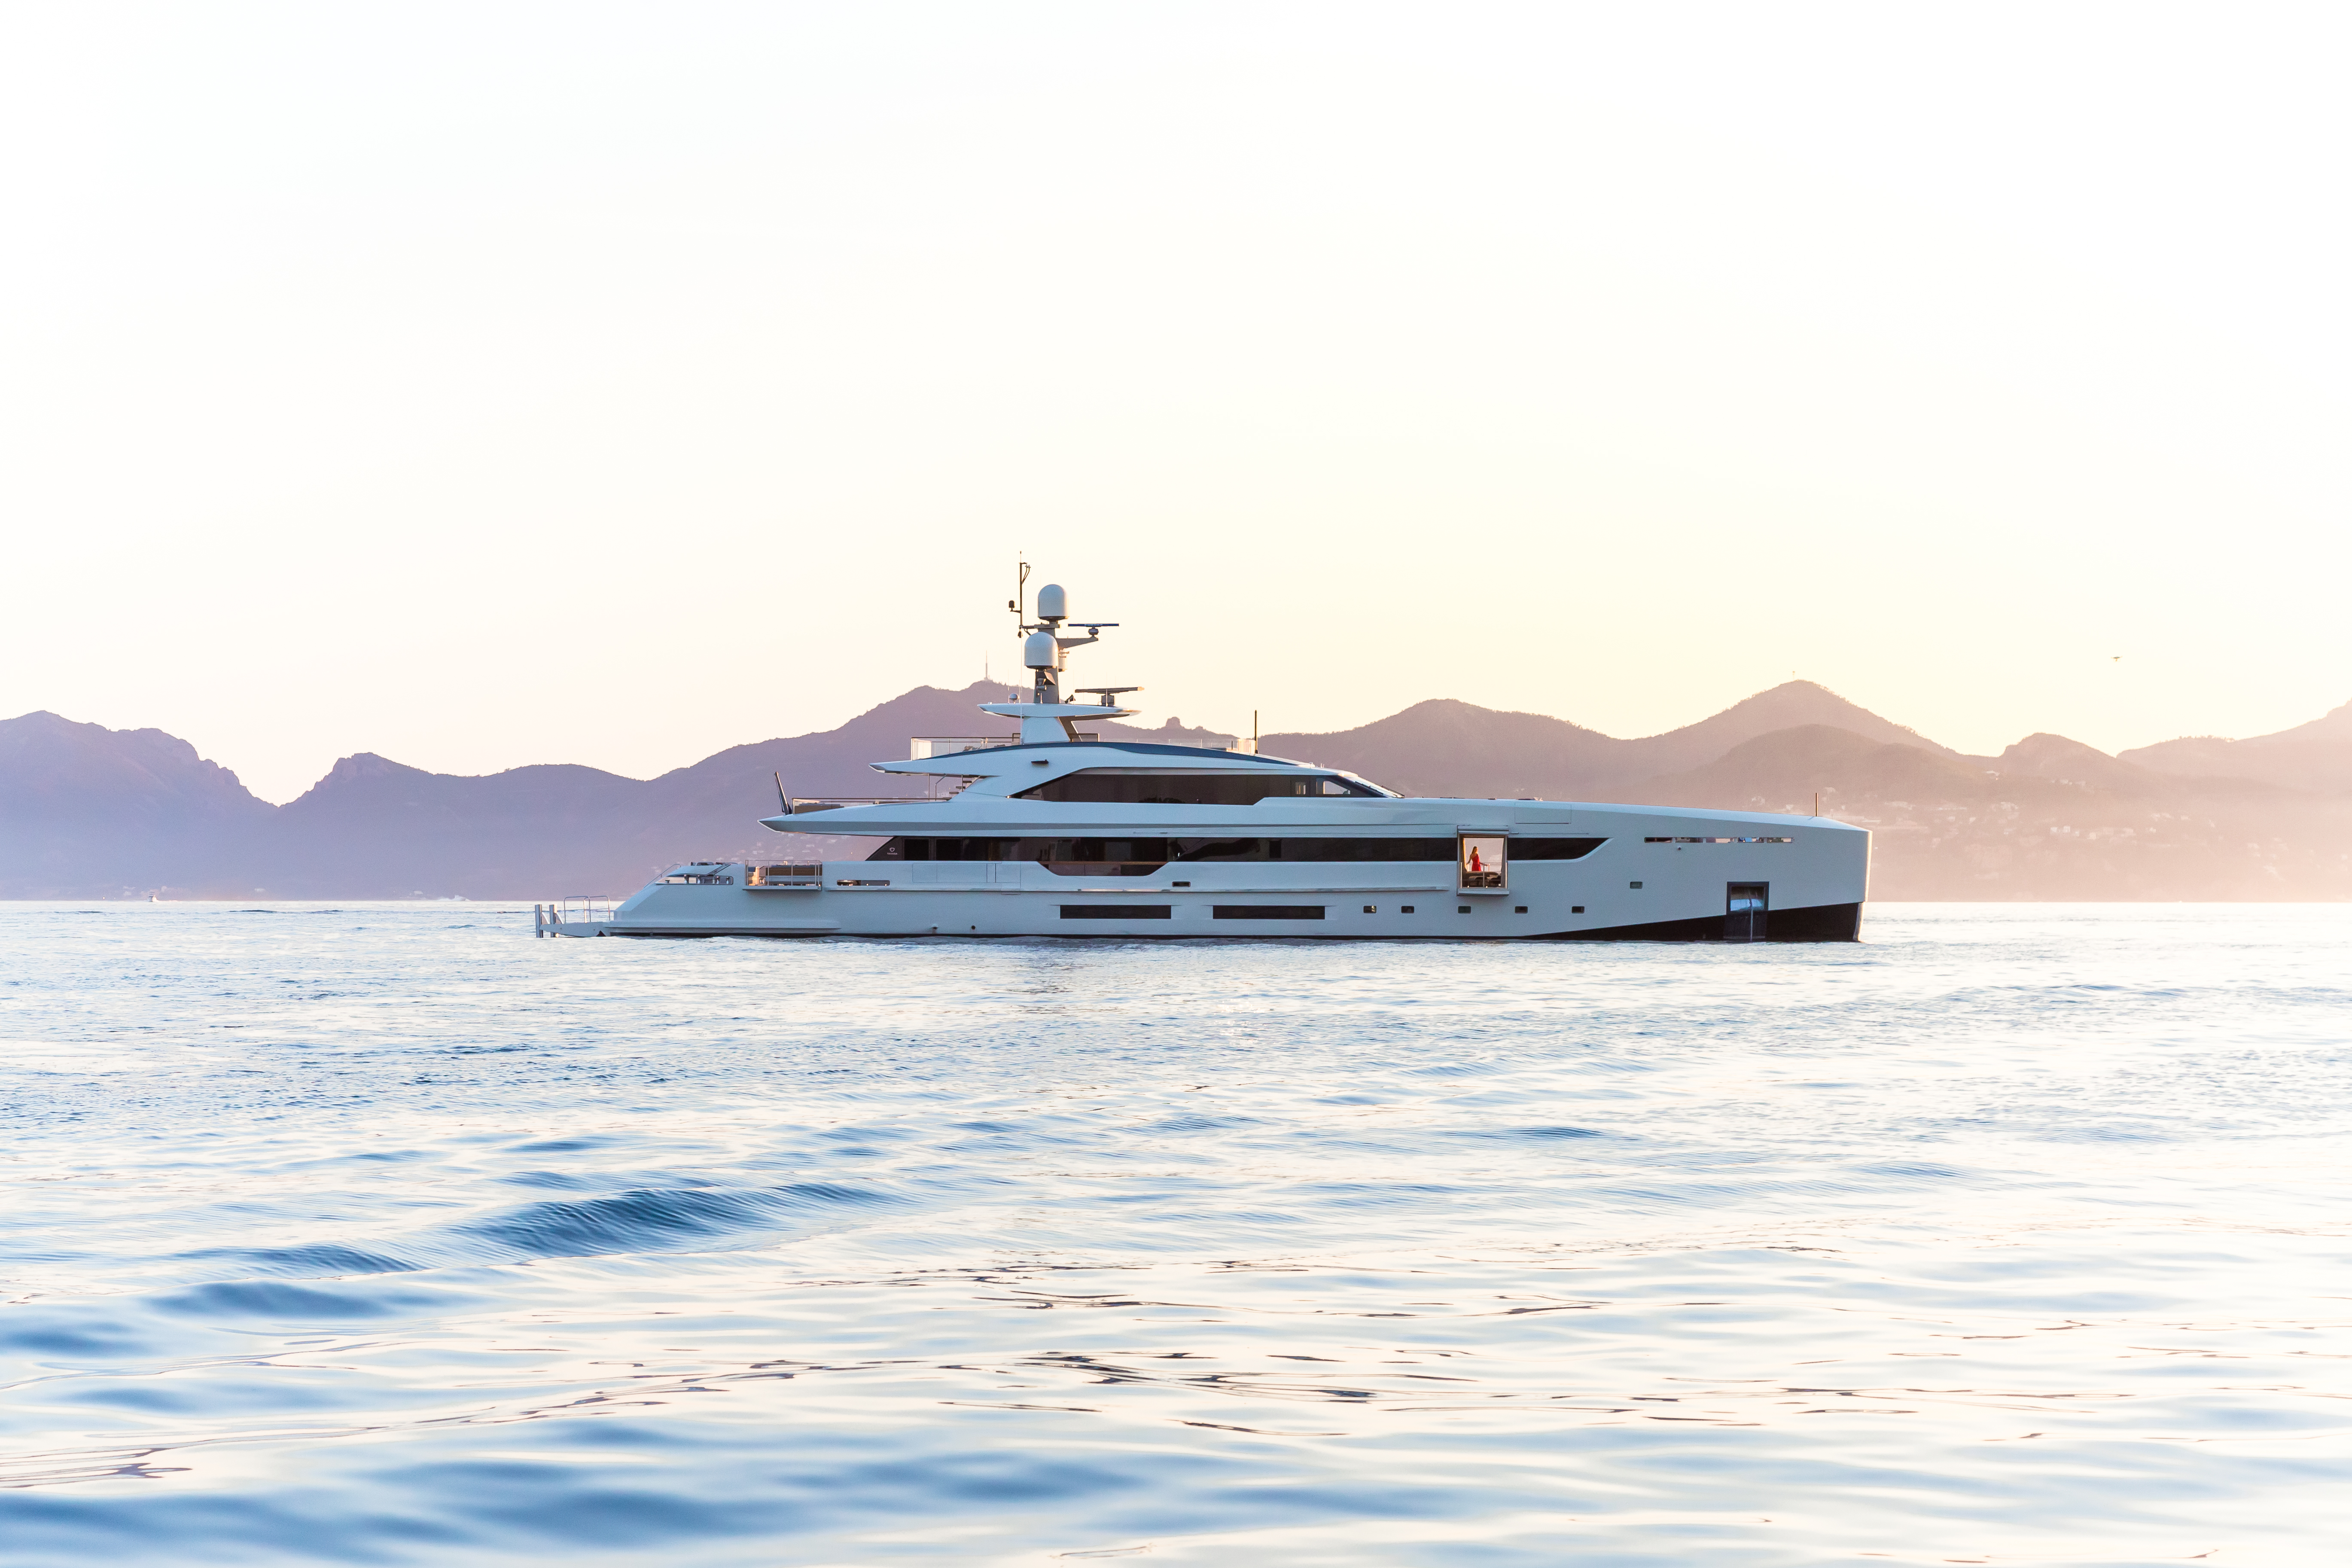 Cruising The Waters Of The Mediterranean